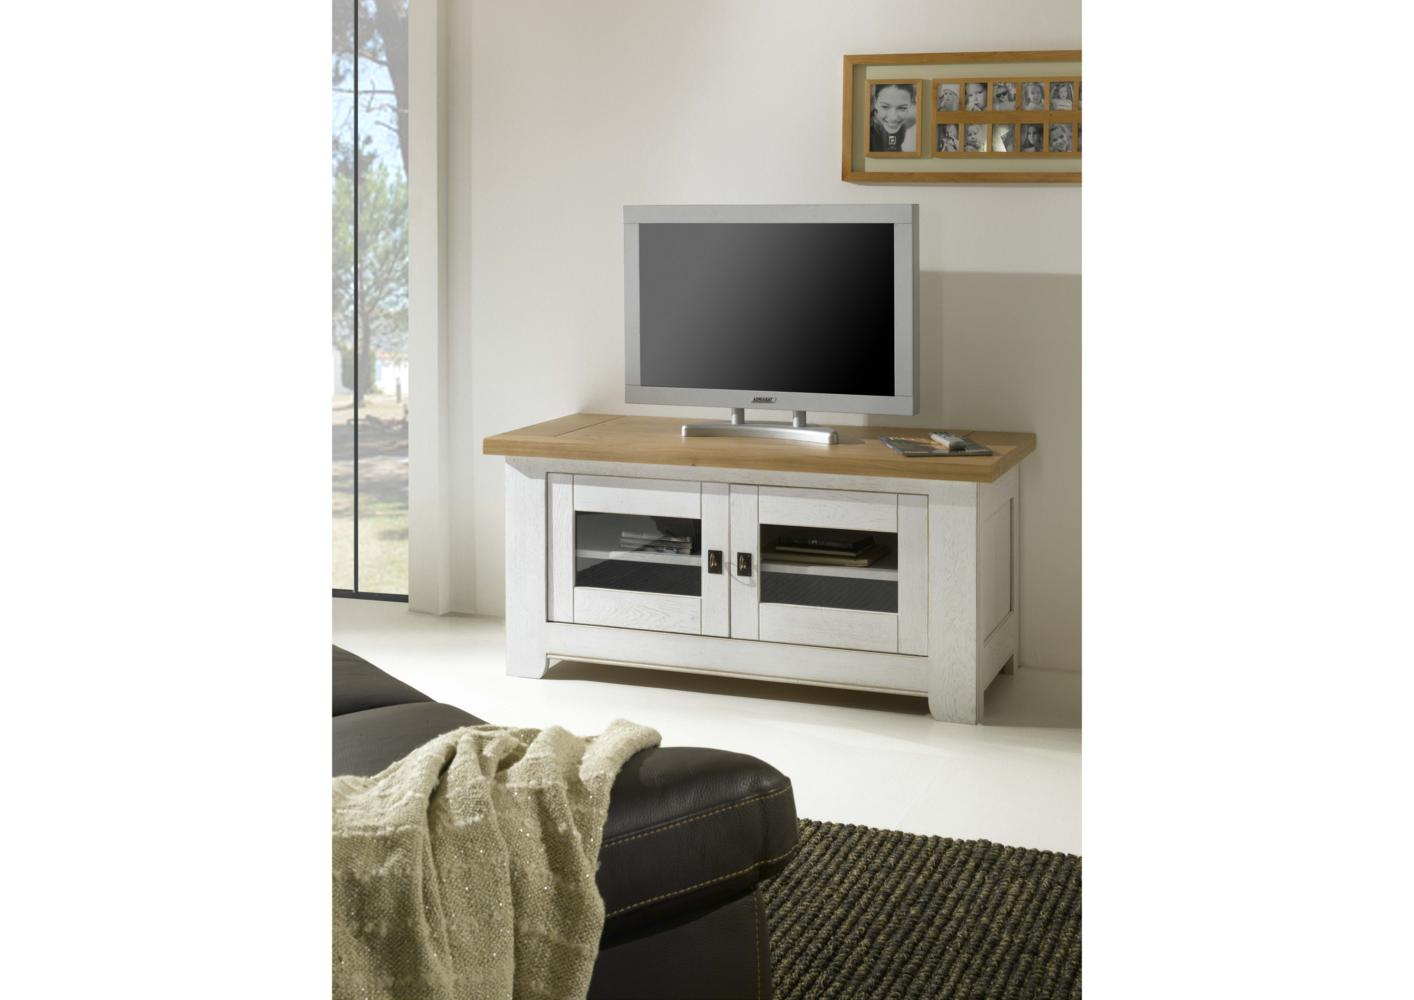 acheter votre meuble tv en ch ne bicolor blanc et vernis portes vitr e chez simeuble. Black Bedroom Furniture Sets. Home Design Ideas